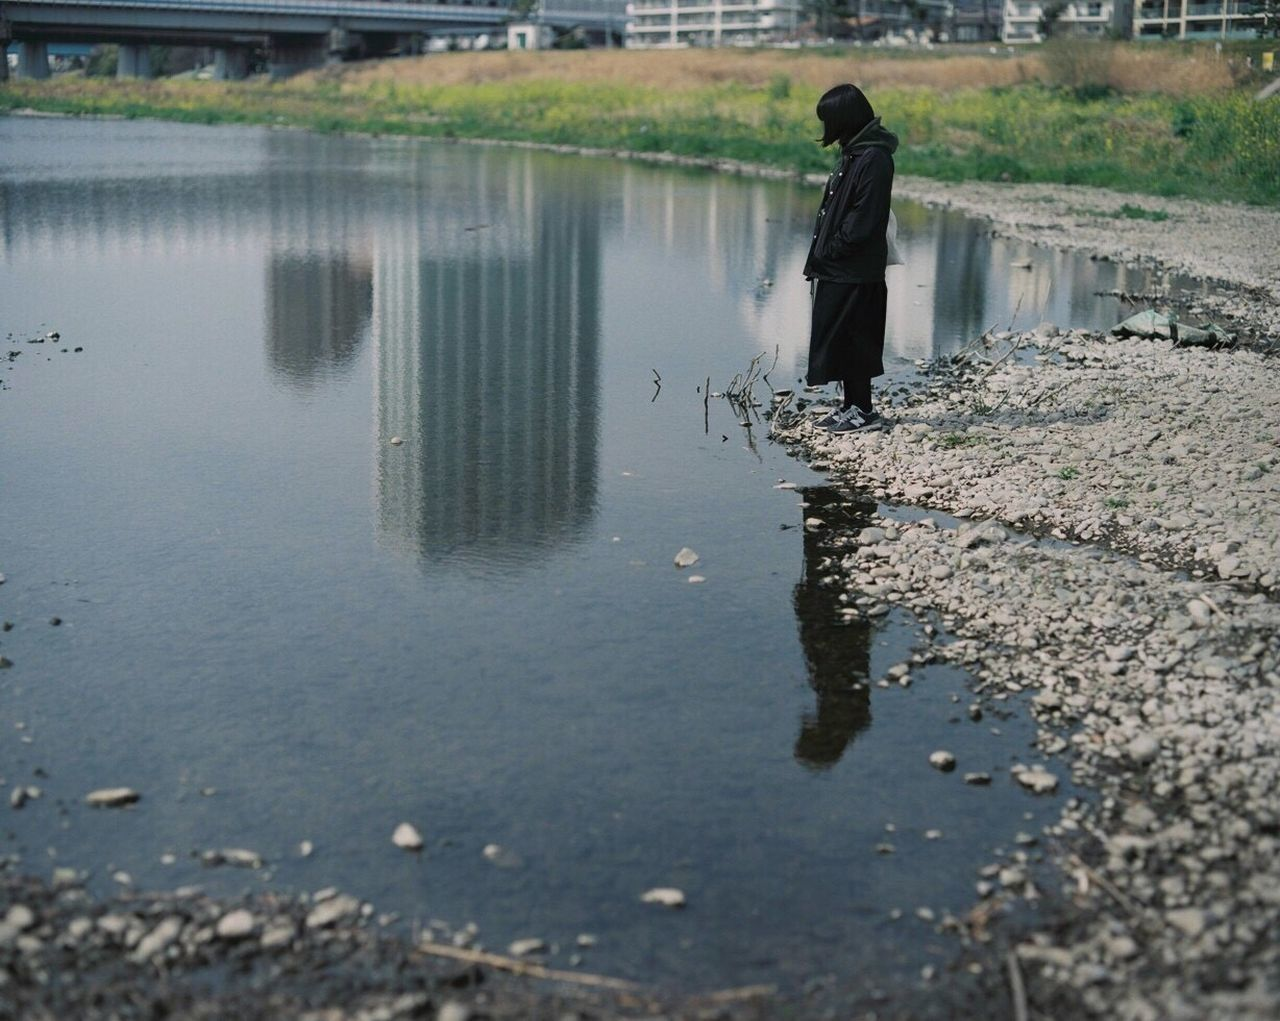 Filmcamera Water Reflection One Person Standing Day Filmisnotdead Film Photography Film Outdoors